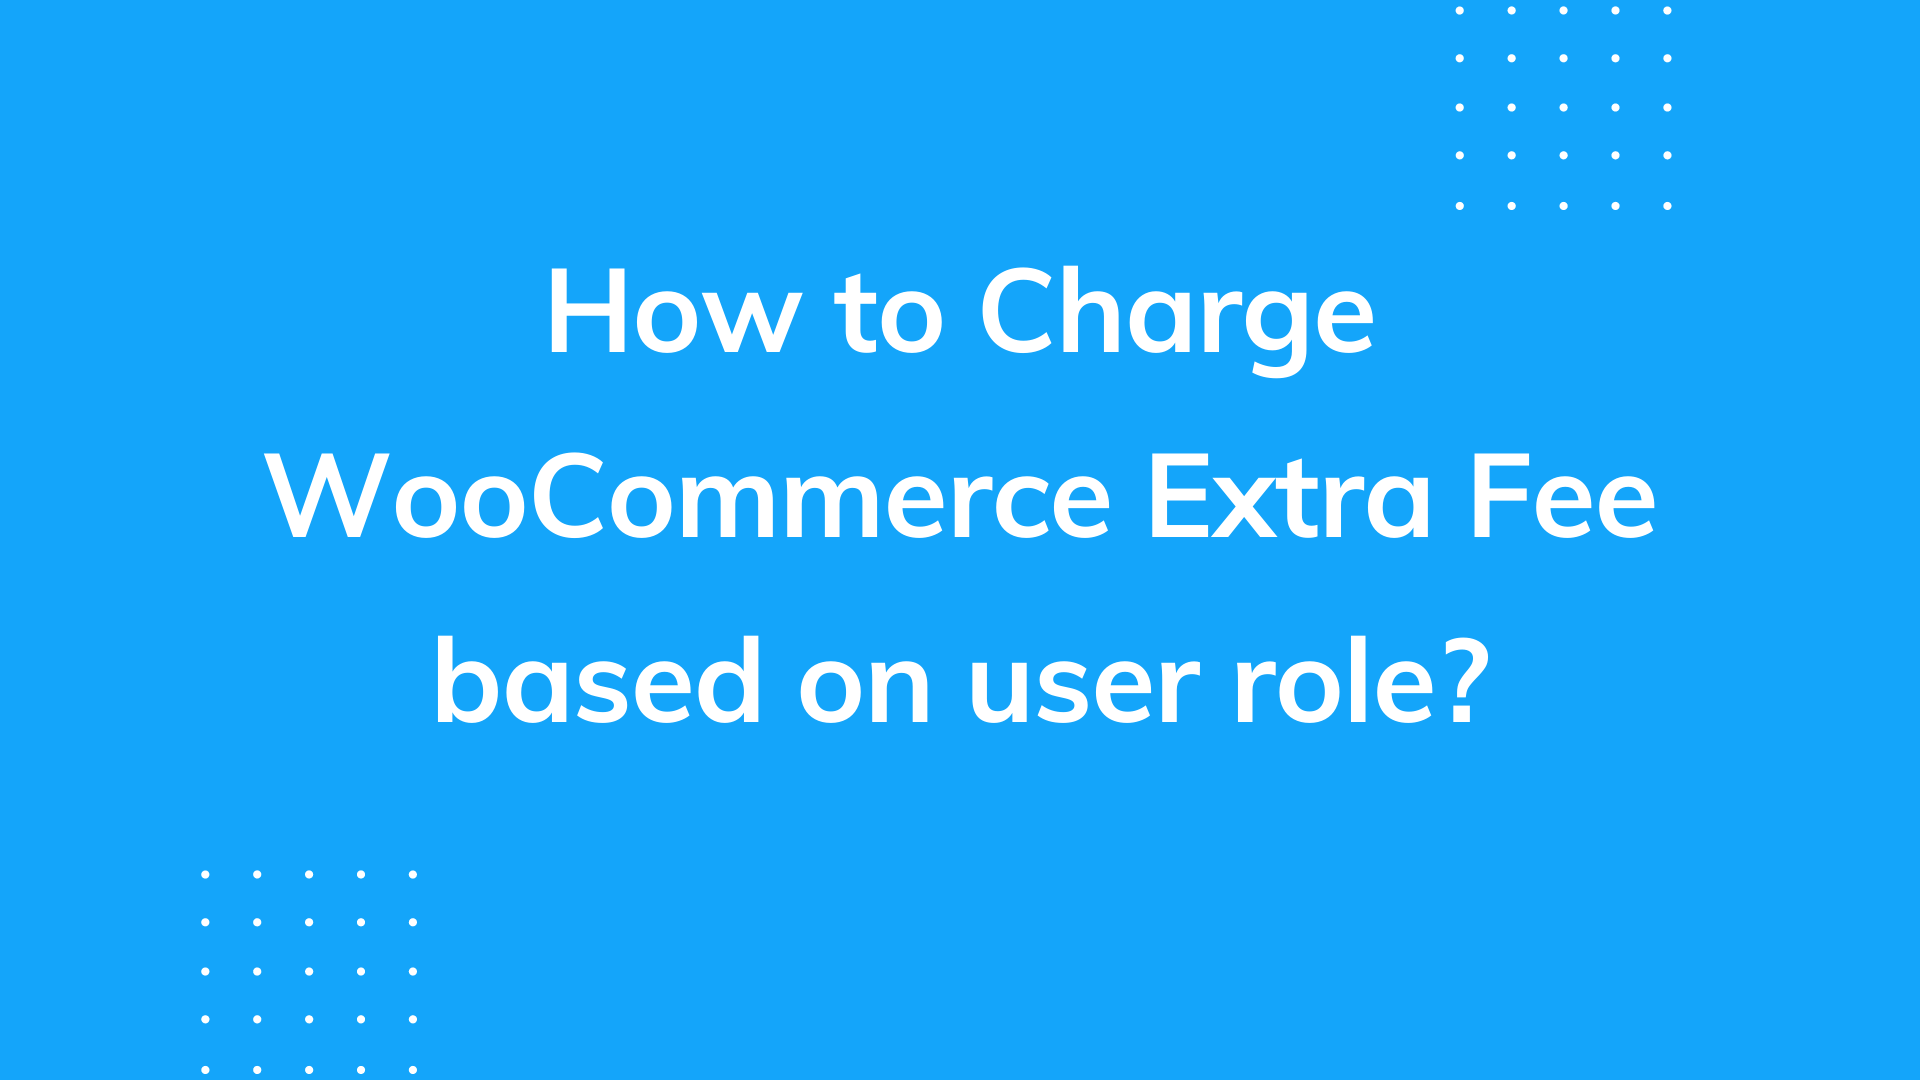 How to charge WooCommerce extra fee based on user role?